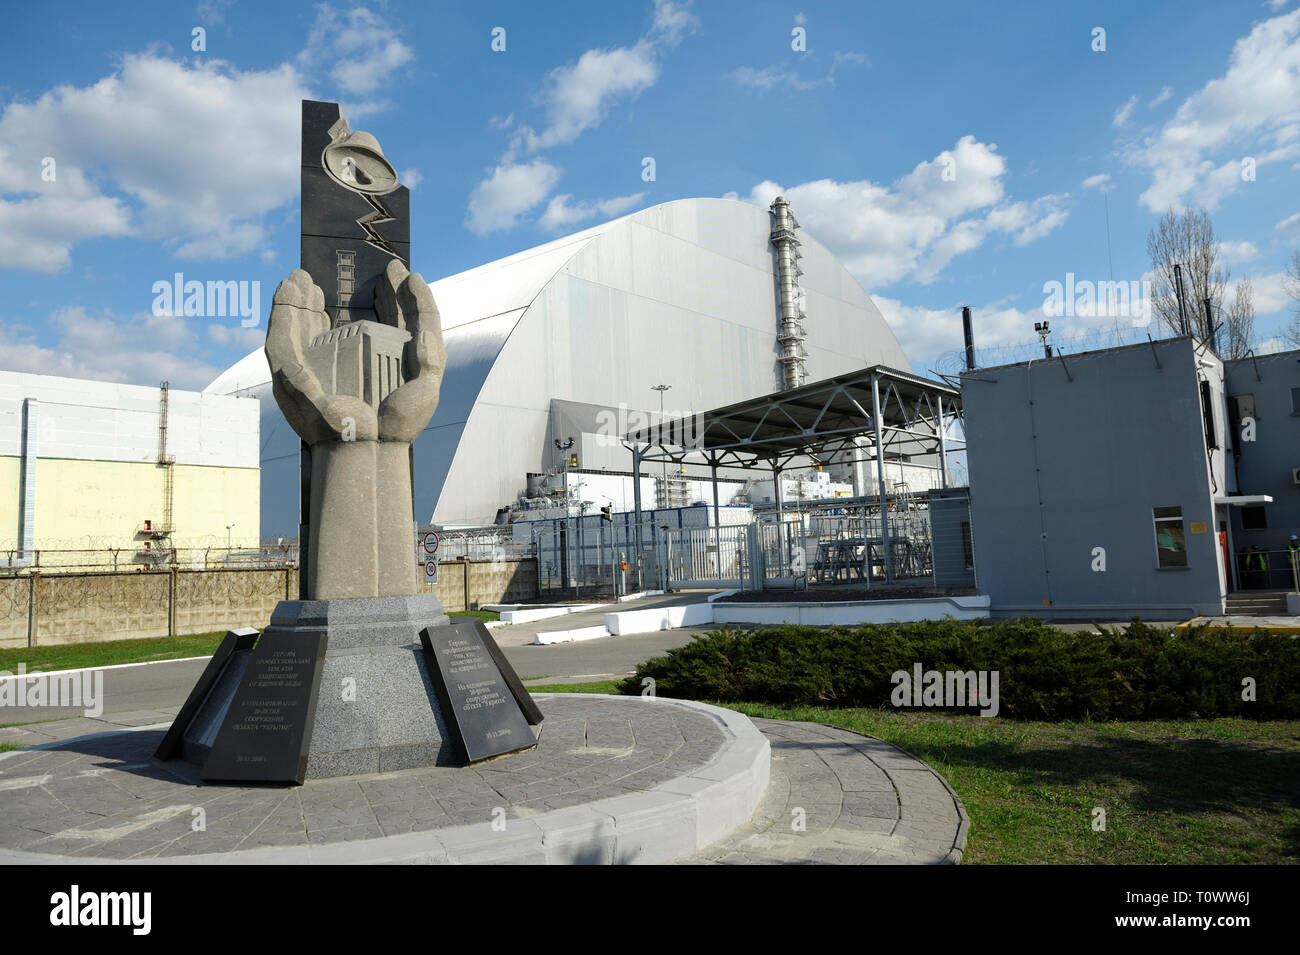 Monument to the Chernobyl Liquidators and New Safe Confinement on a background. April 20, 2018. Chernobyl, Ukraine - Stock Image